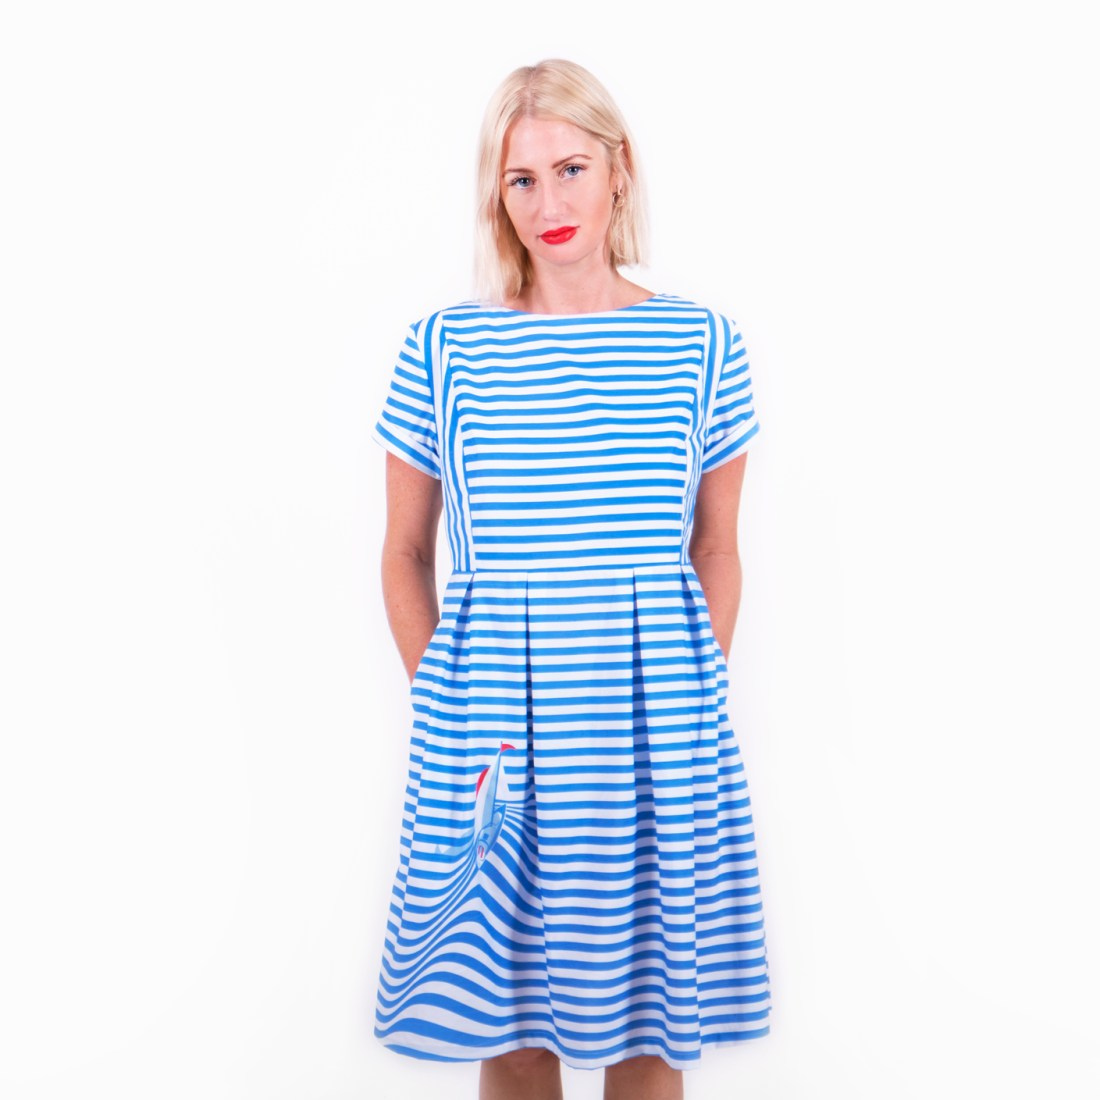 Sail Away Dress by La Come Di